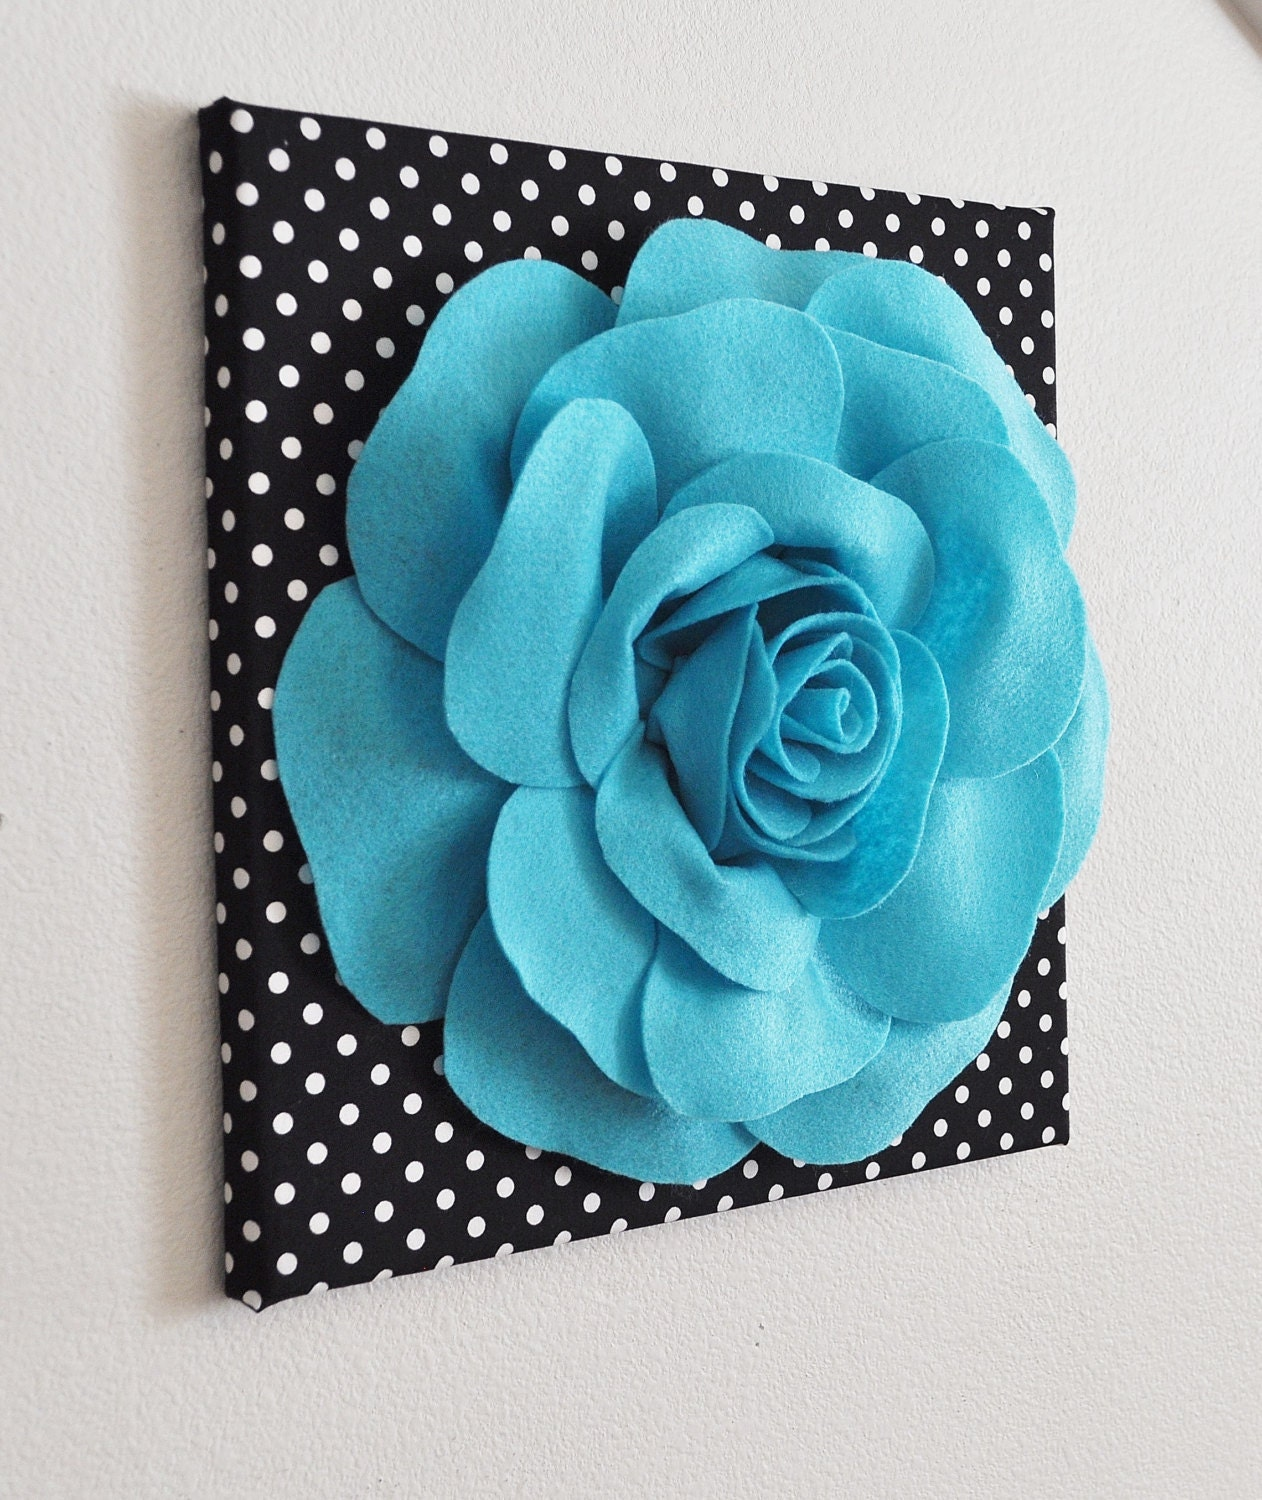 Items Similar To Teal Purple Abstract Flowers Wall Decor: Flower Wall Decor Light Turquoise Rose On Black And White